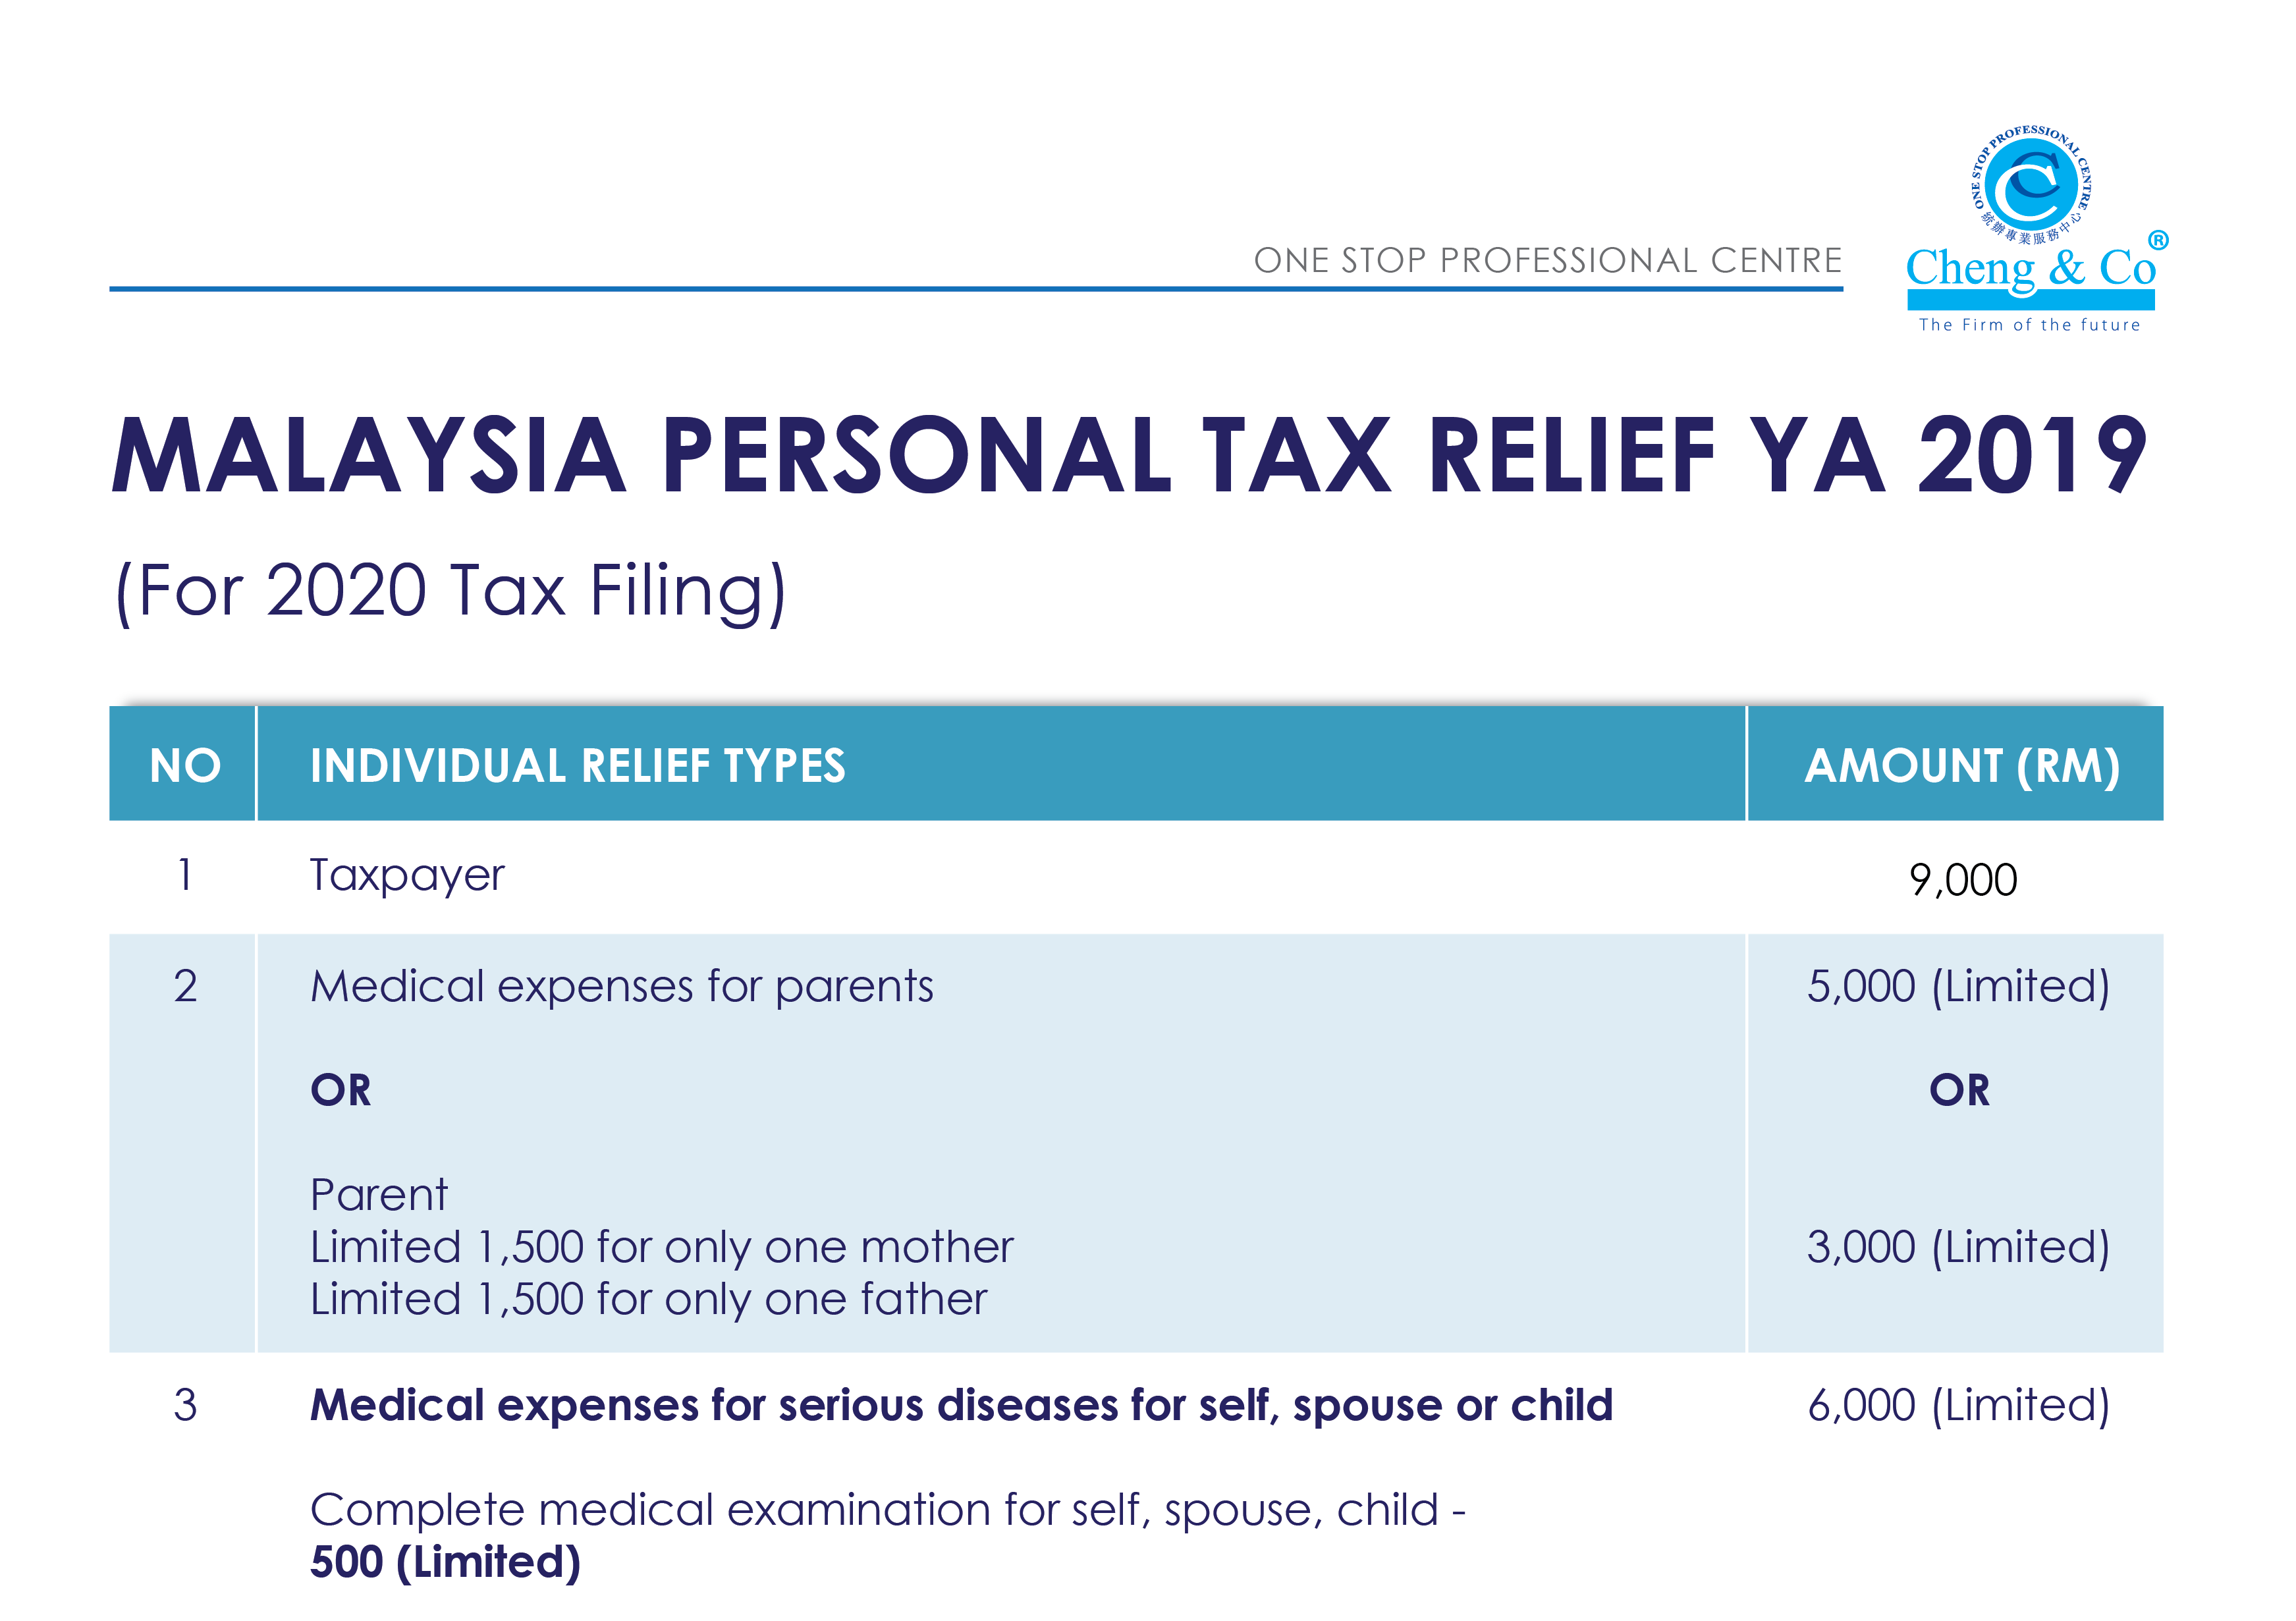 Malaysia Personal Tax Relief YA 2019 - Cheng & Co